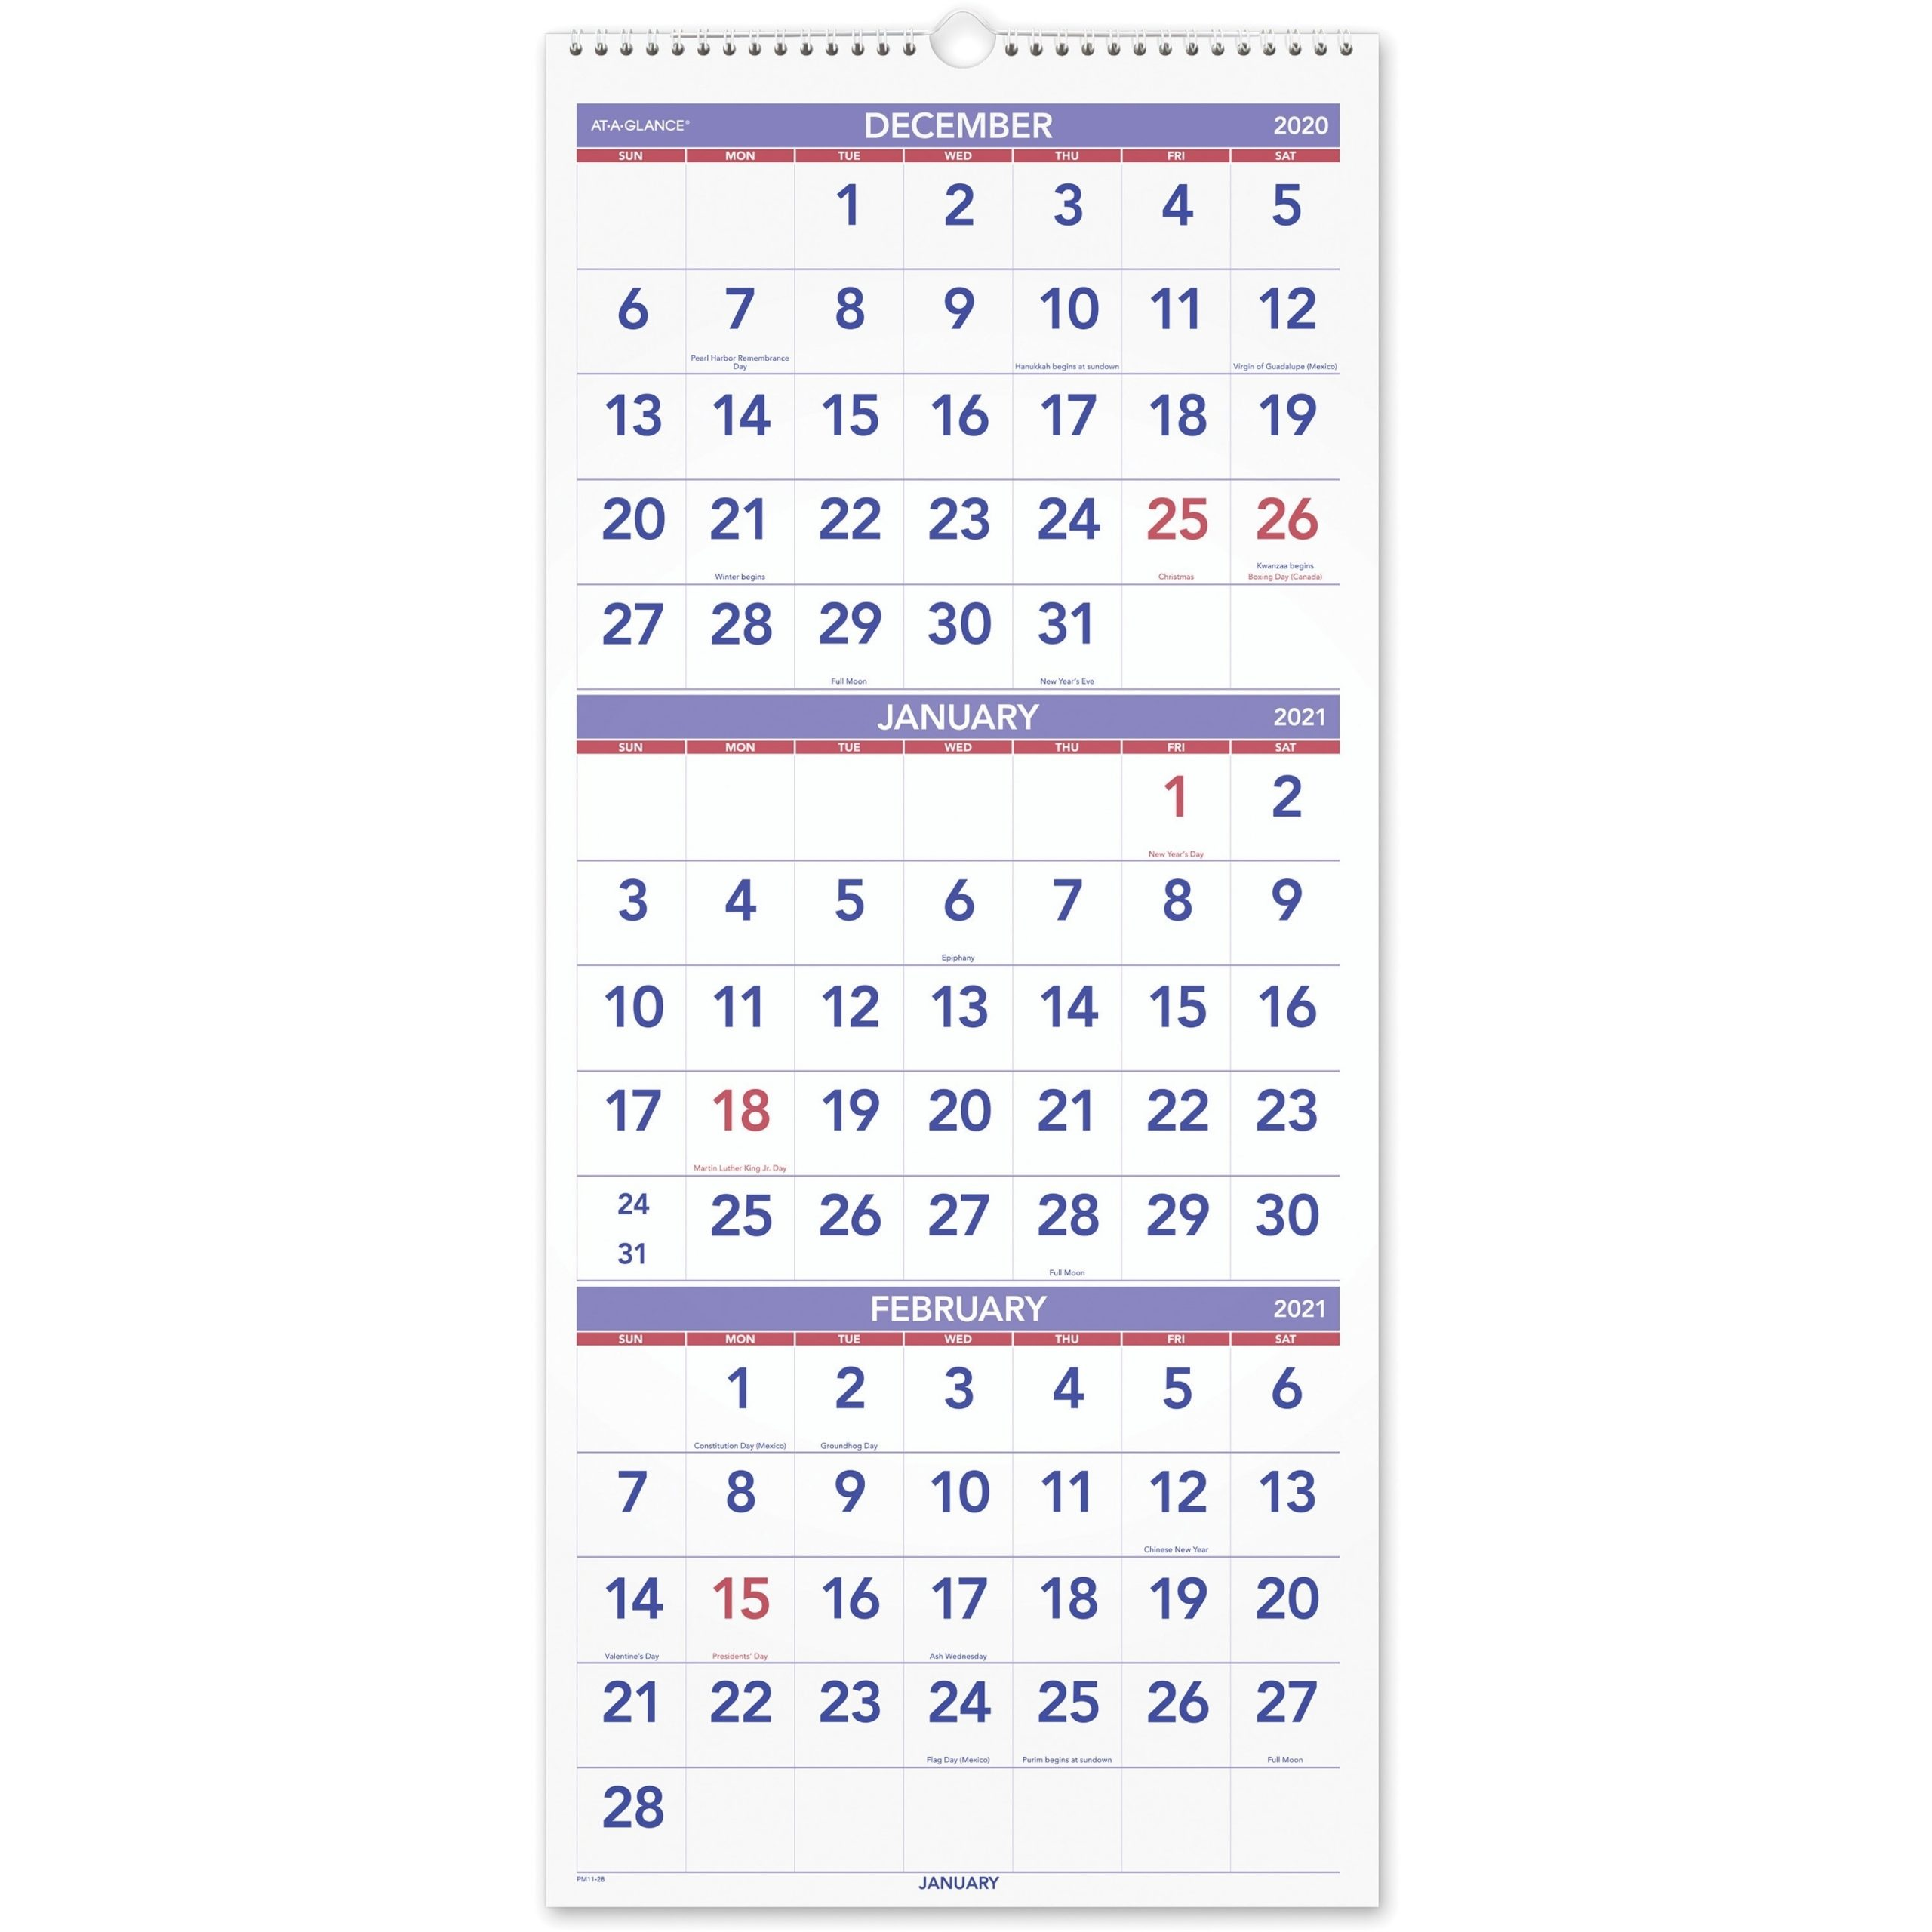 "At-A-Glance 3 Month Reference Wall Calendar - Monthly - 1.2 Year - December  2020 Till January 2022 - 3 Month Single Page Layout - 12 1/4"" X 27"" Sheet"